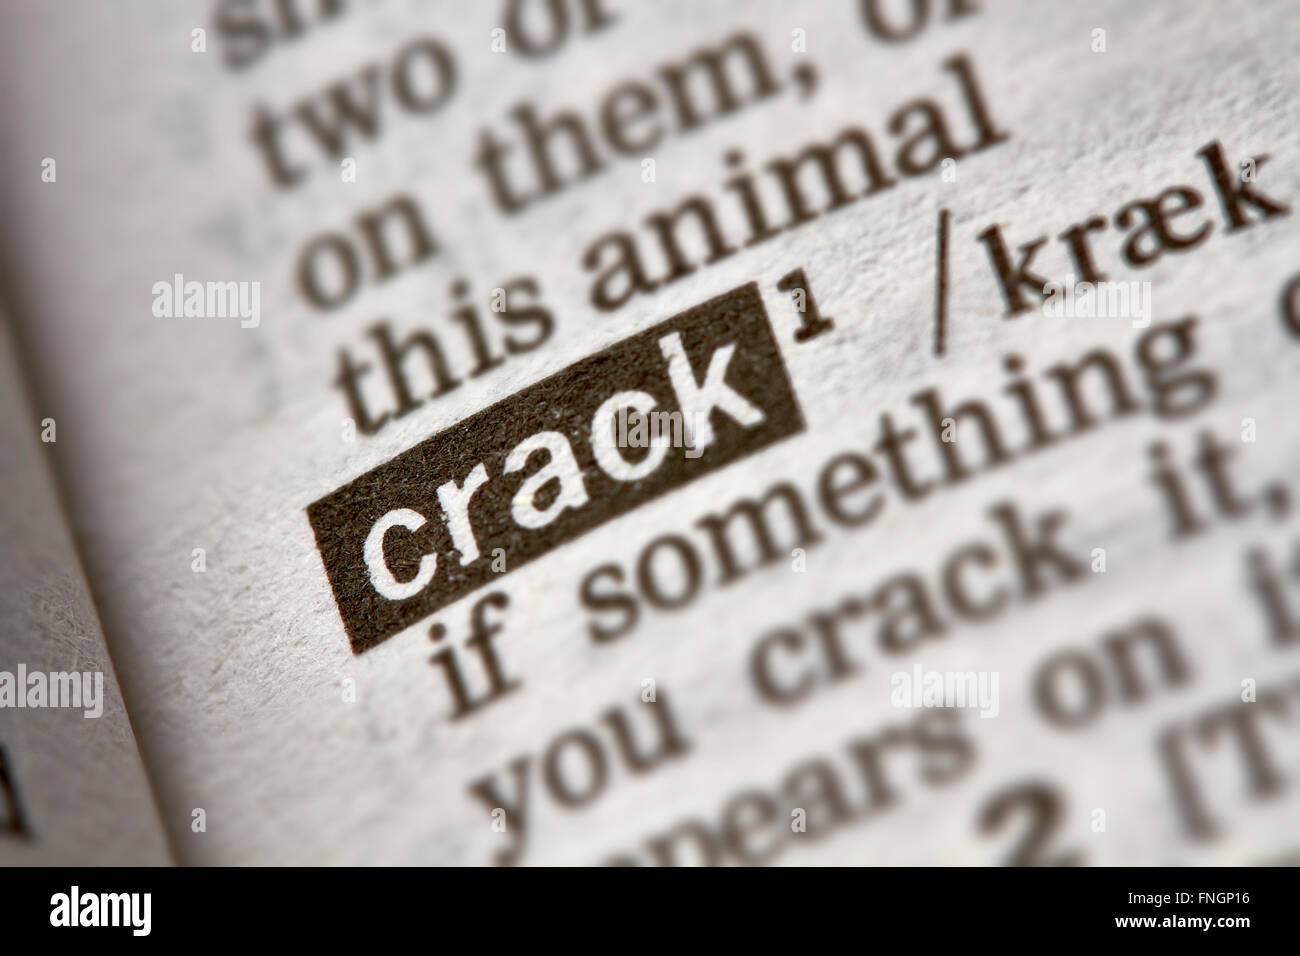 Crack Word Definition Text in Dictionary Page - Stock Image